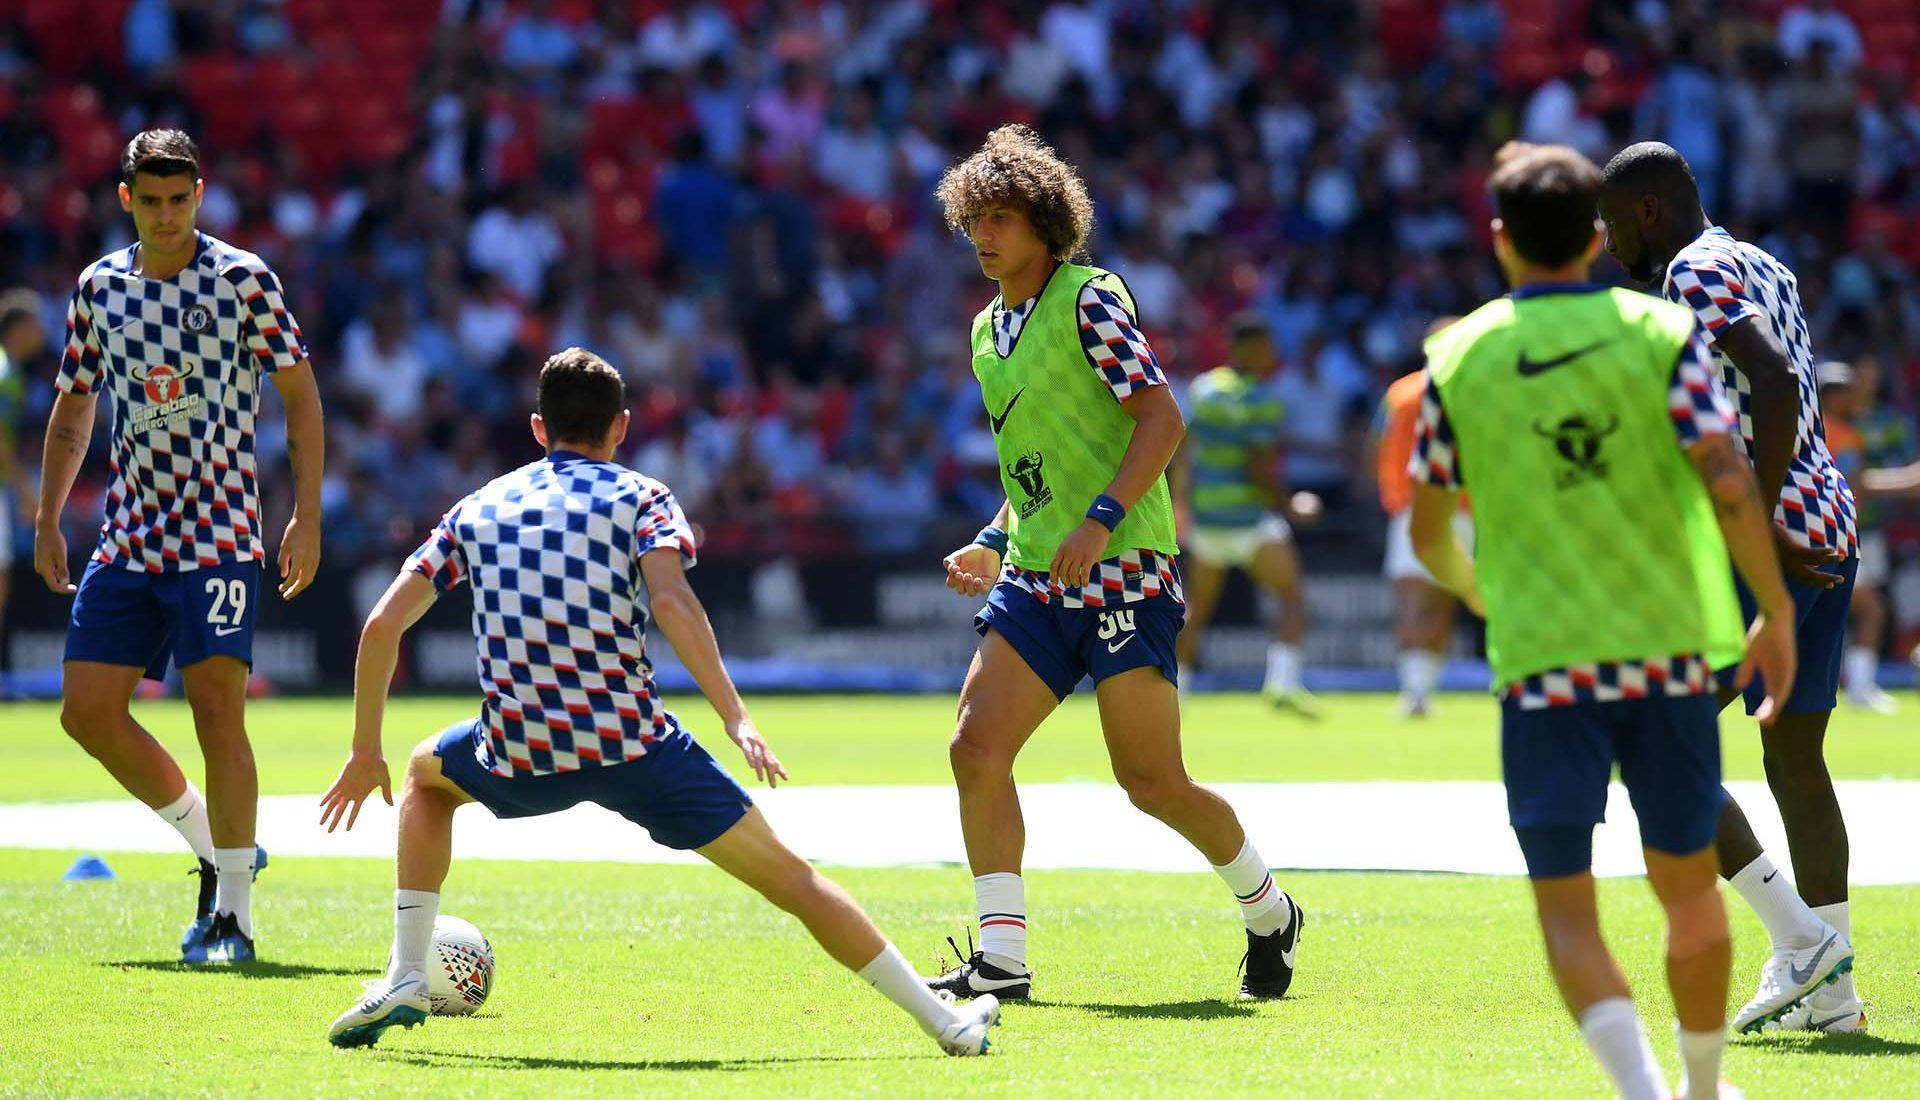 David Luiz of warms up prior to the FA Community Shield between Manchester City and Chelsea at Wembley Stadium on August 5, 2018 in London.